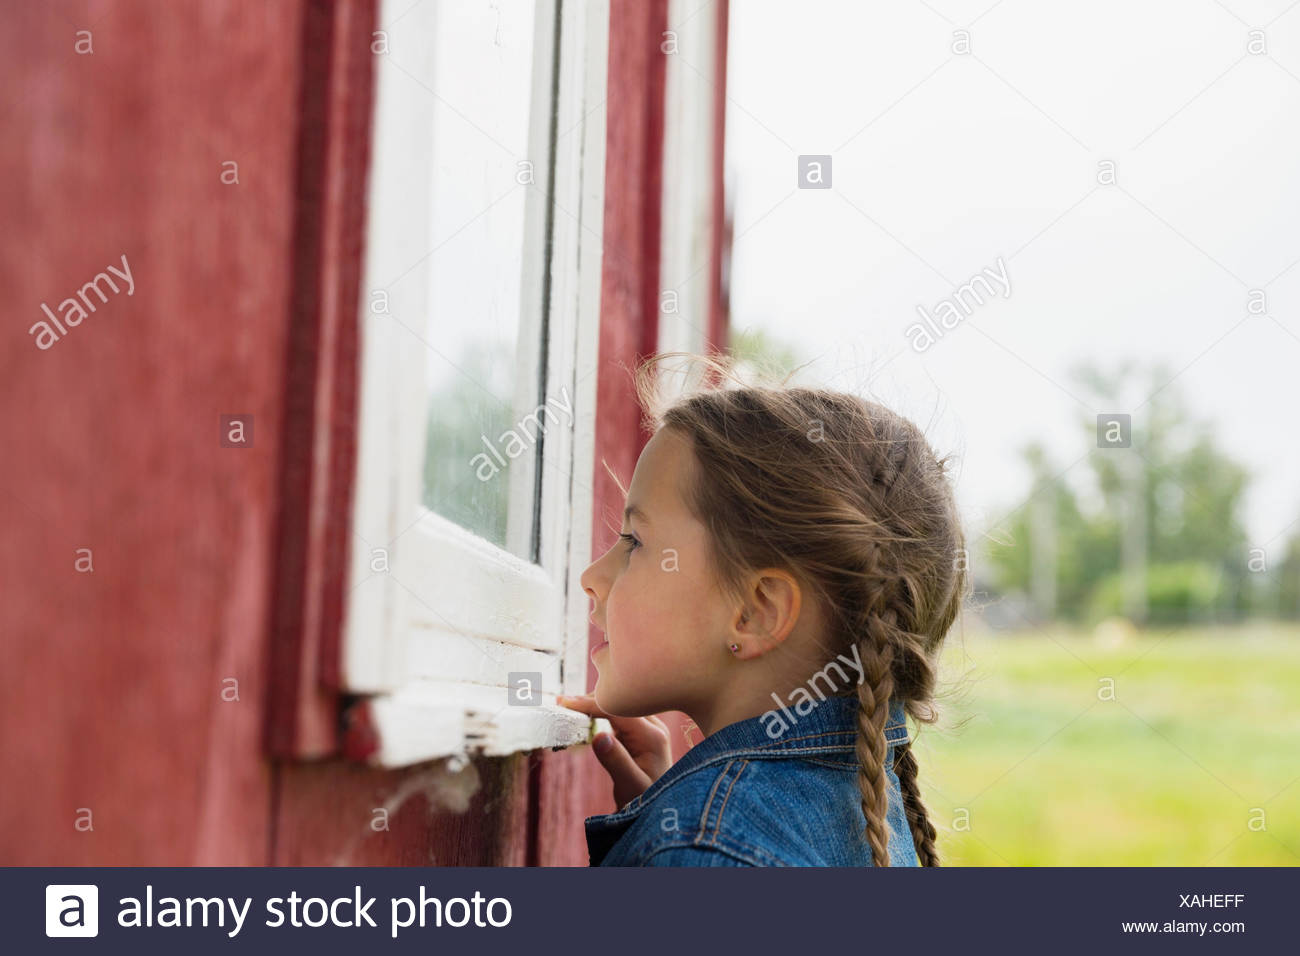 Curious girl looking inside window - Stock Image